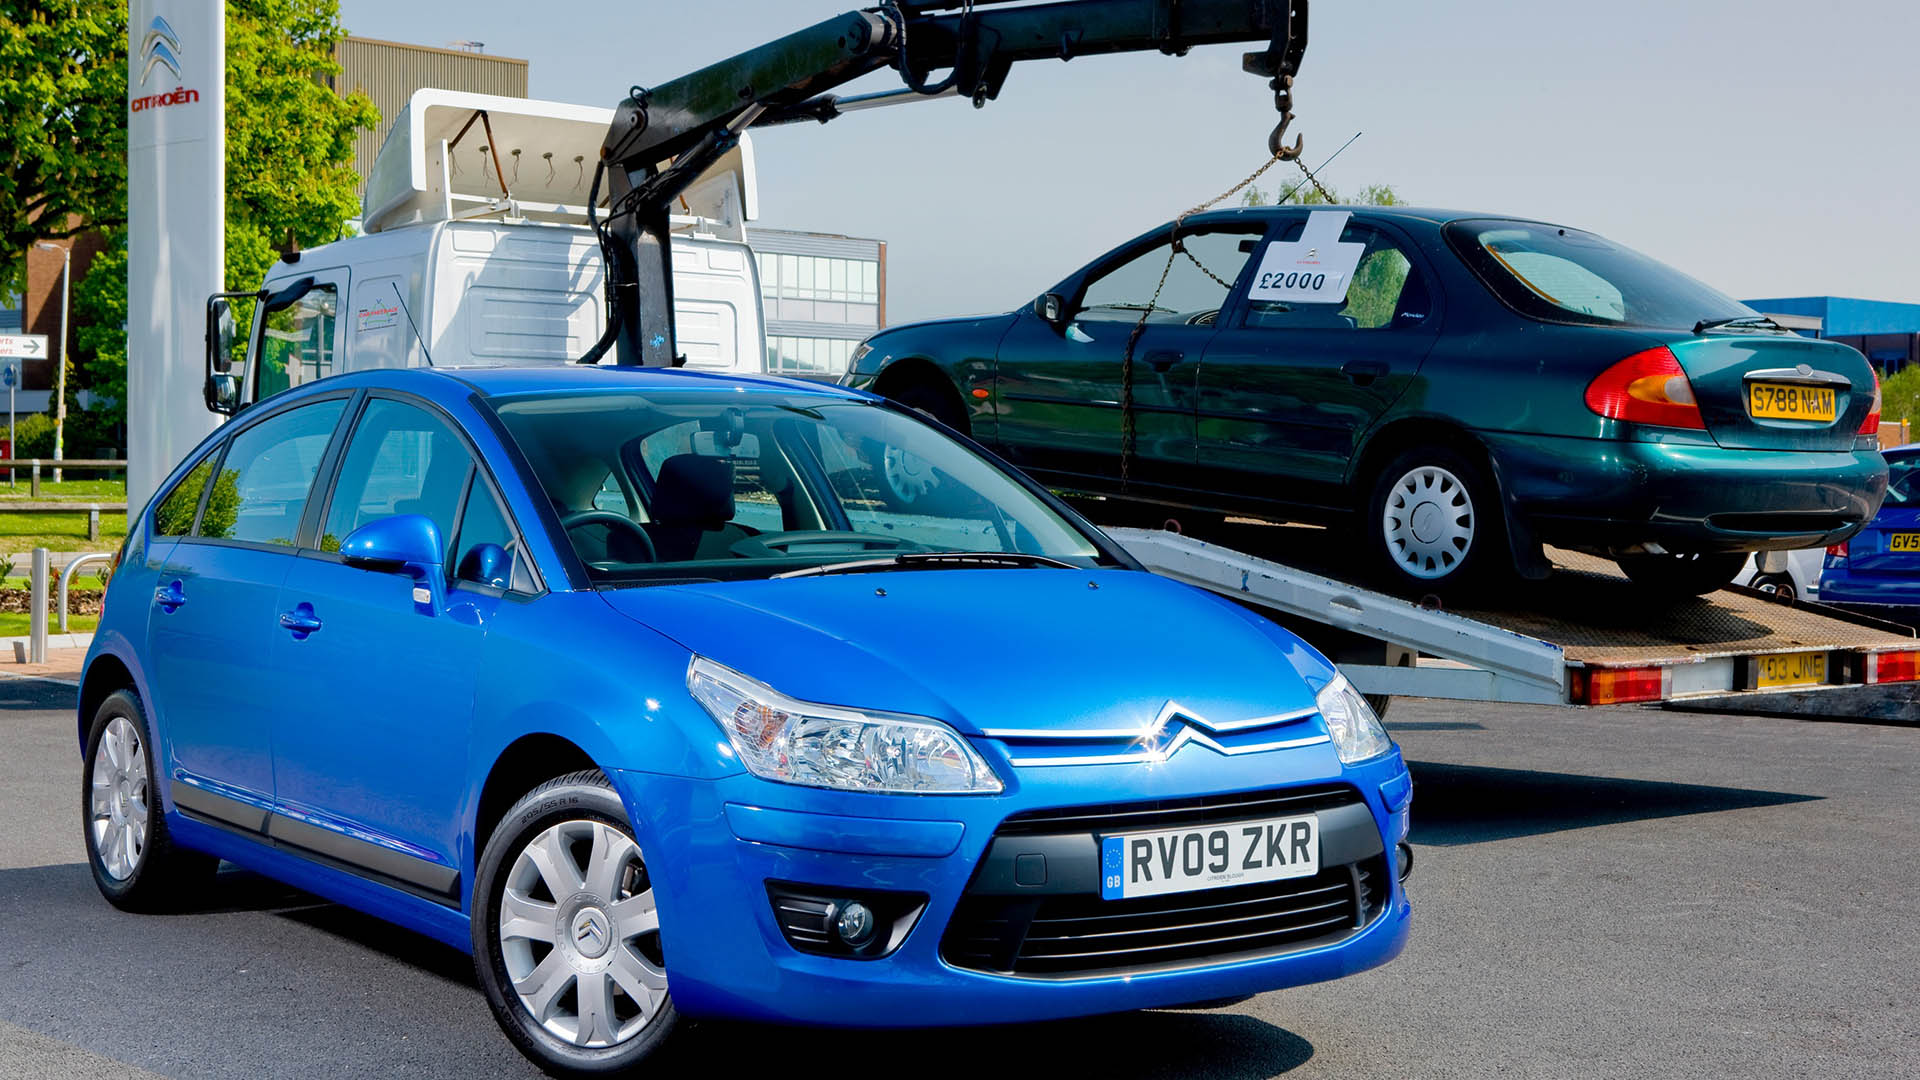 Citroen C4 and Ford Mondeo scrappage